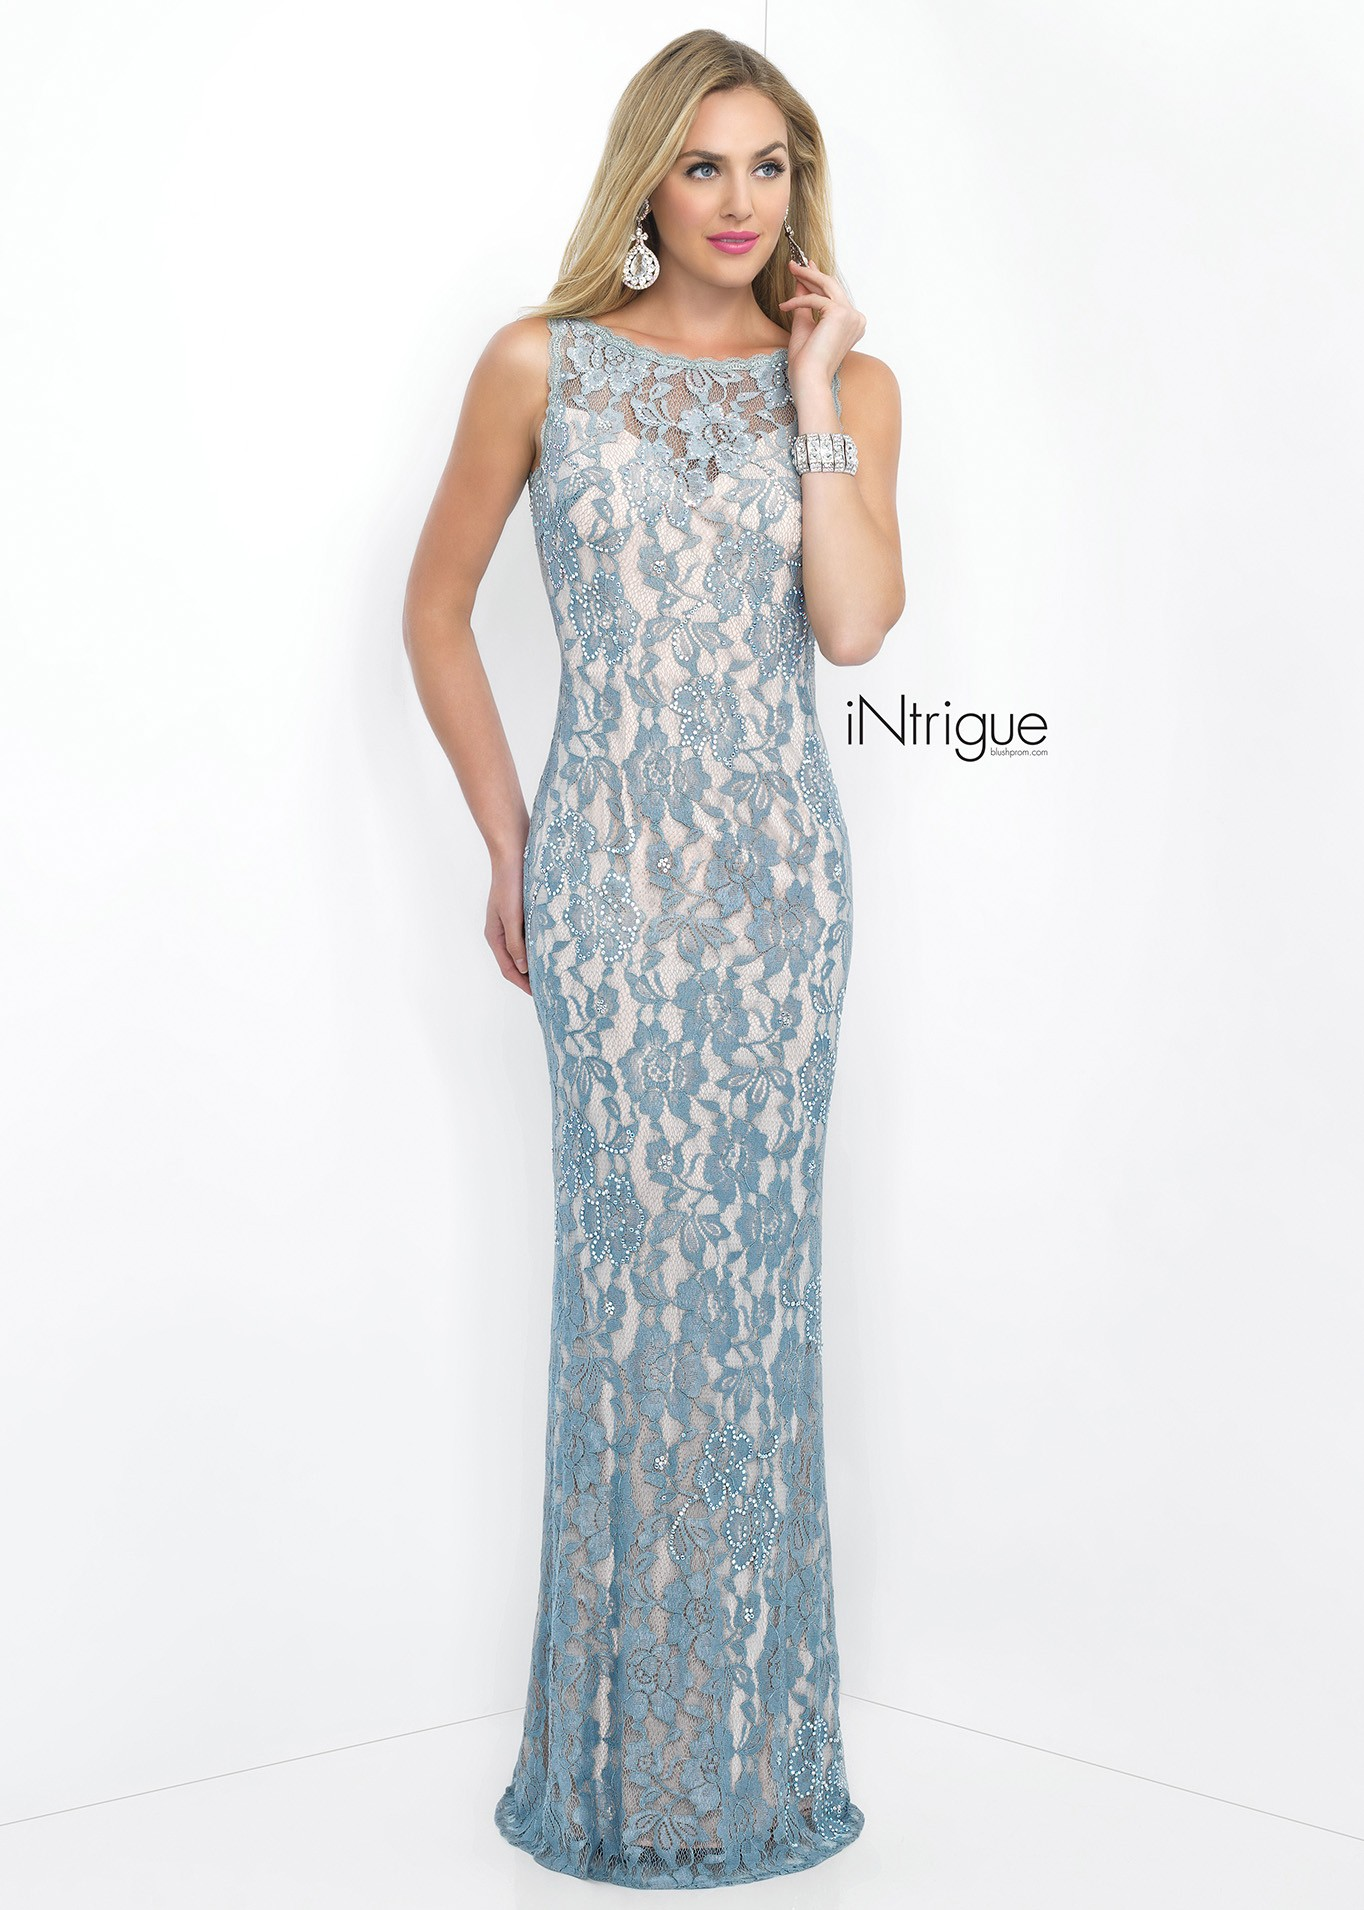 Intrigue 41 Nude Lace Evening Dress | RissyRoos.com